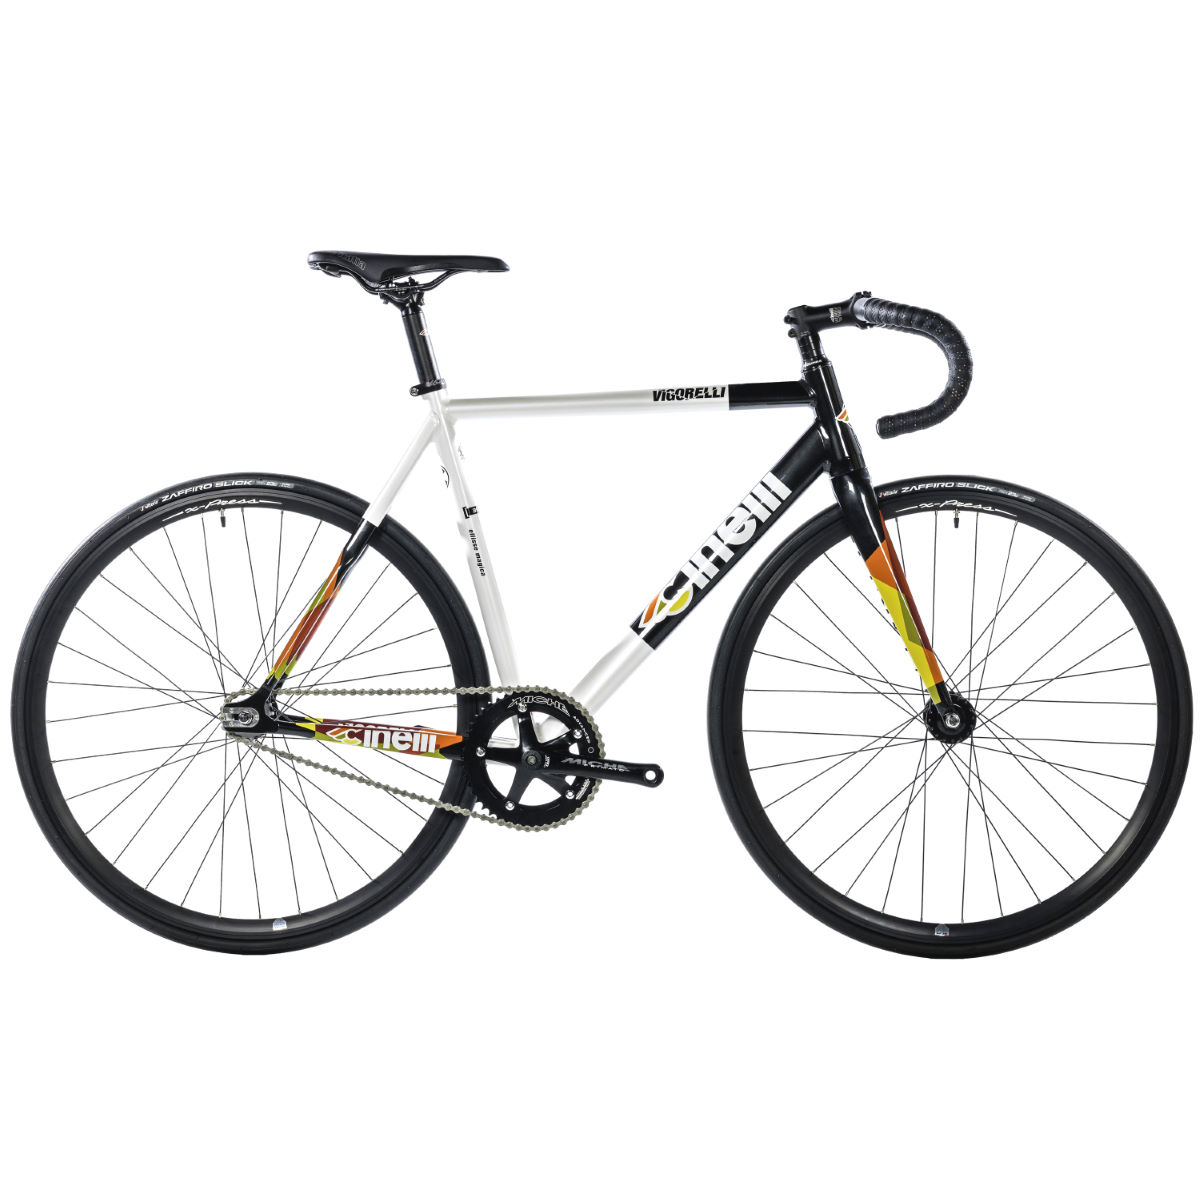 Cinelli Vigorelli HSL (2016) - Large White/Black | Track Bikes